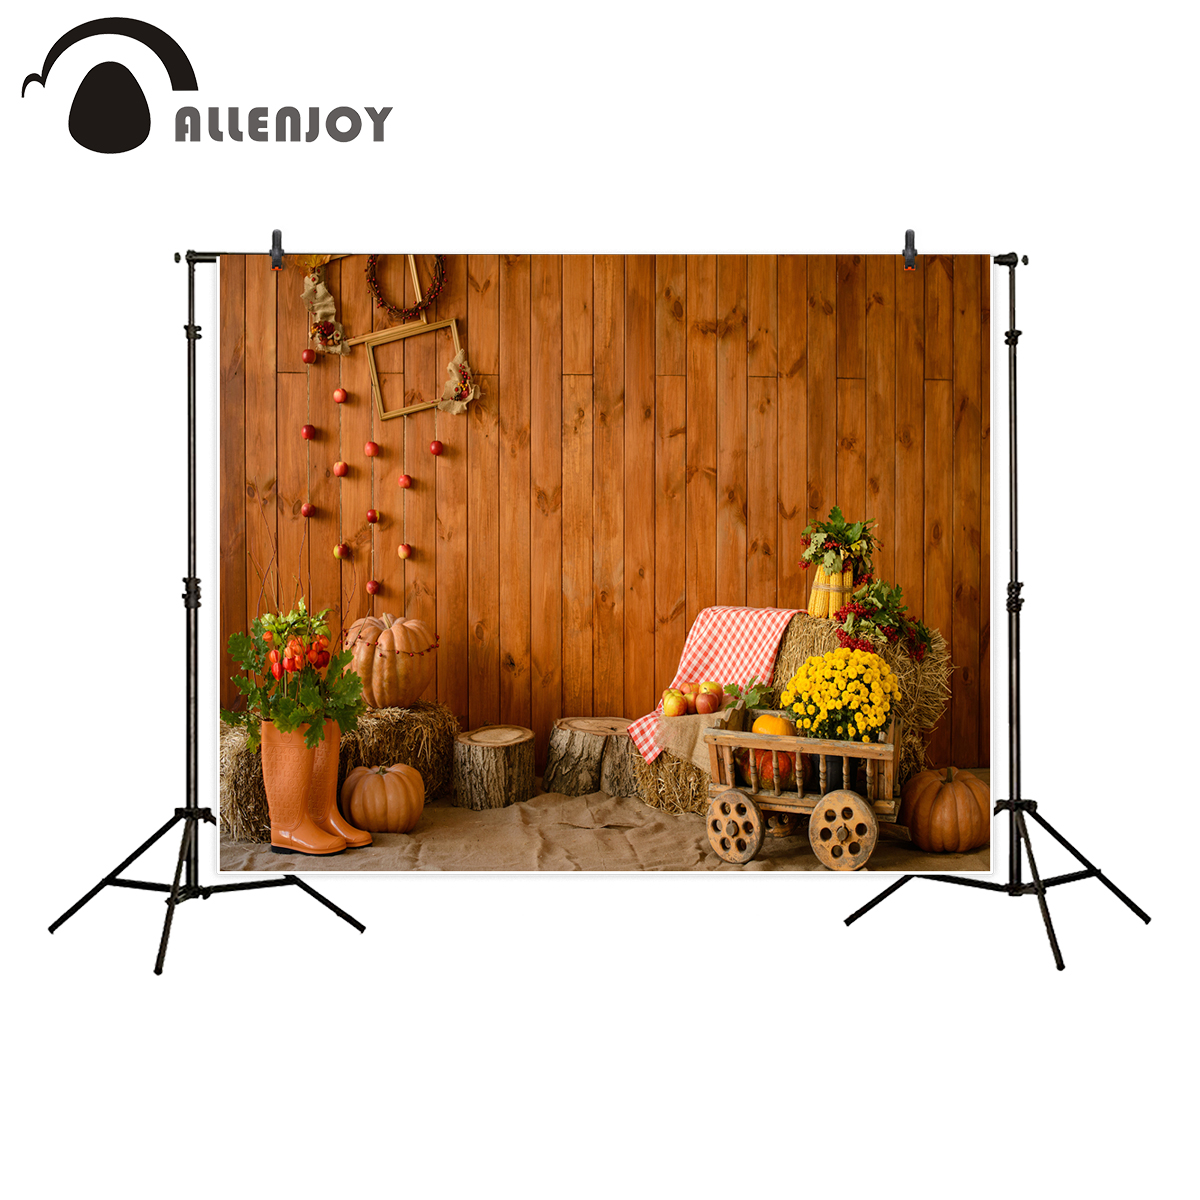 Allenjoy backdrop for photography studio pumpkin wood house countryside autumn background photo shoot new photocall allenjoy photography backdrop flower door wedding children painting colorful background photo studio photocall photo shoot